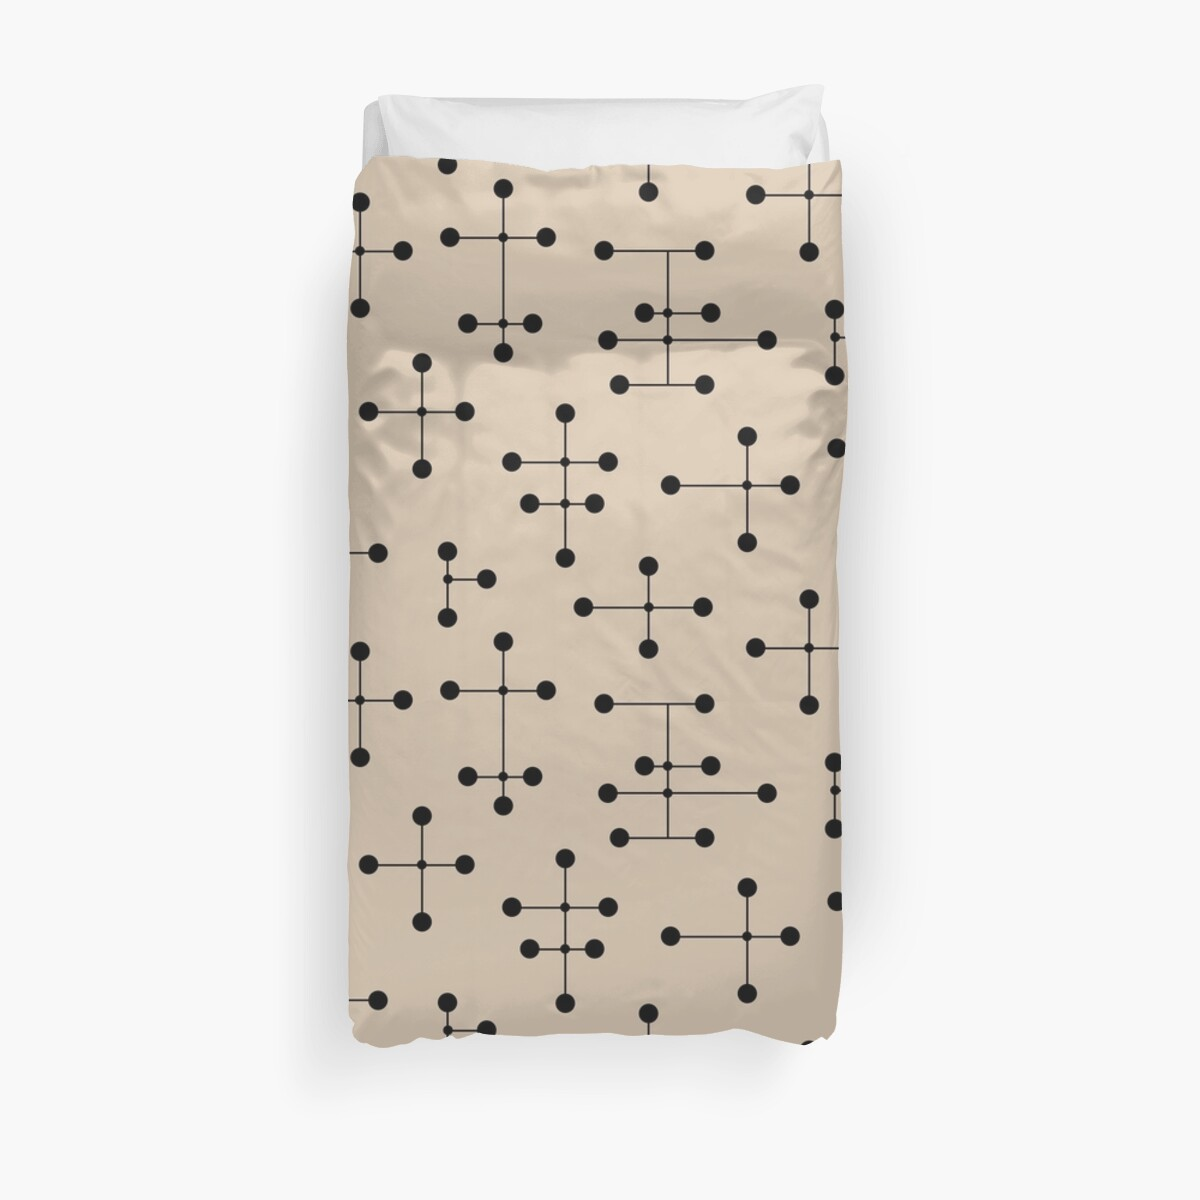 Midcentury Modern Dots 105 by Makanahele